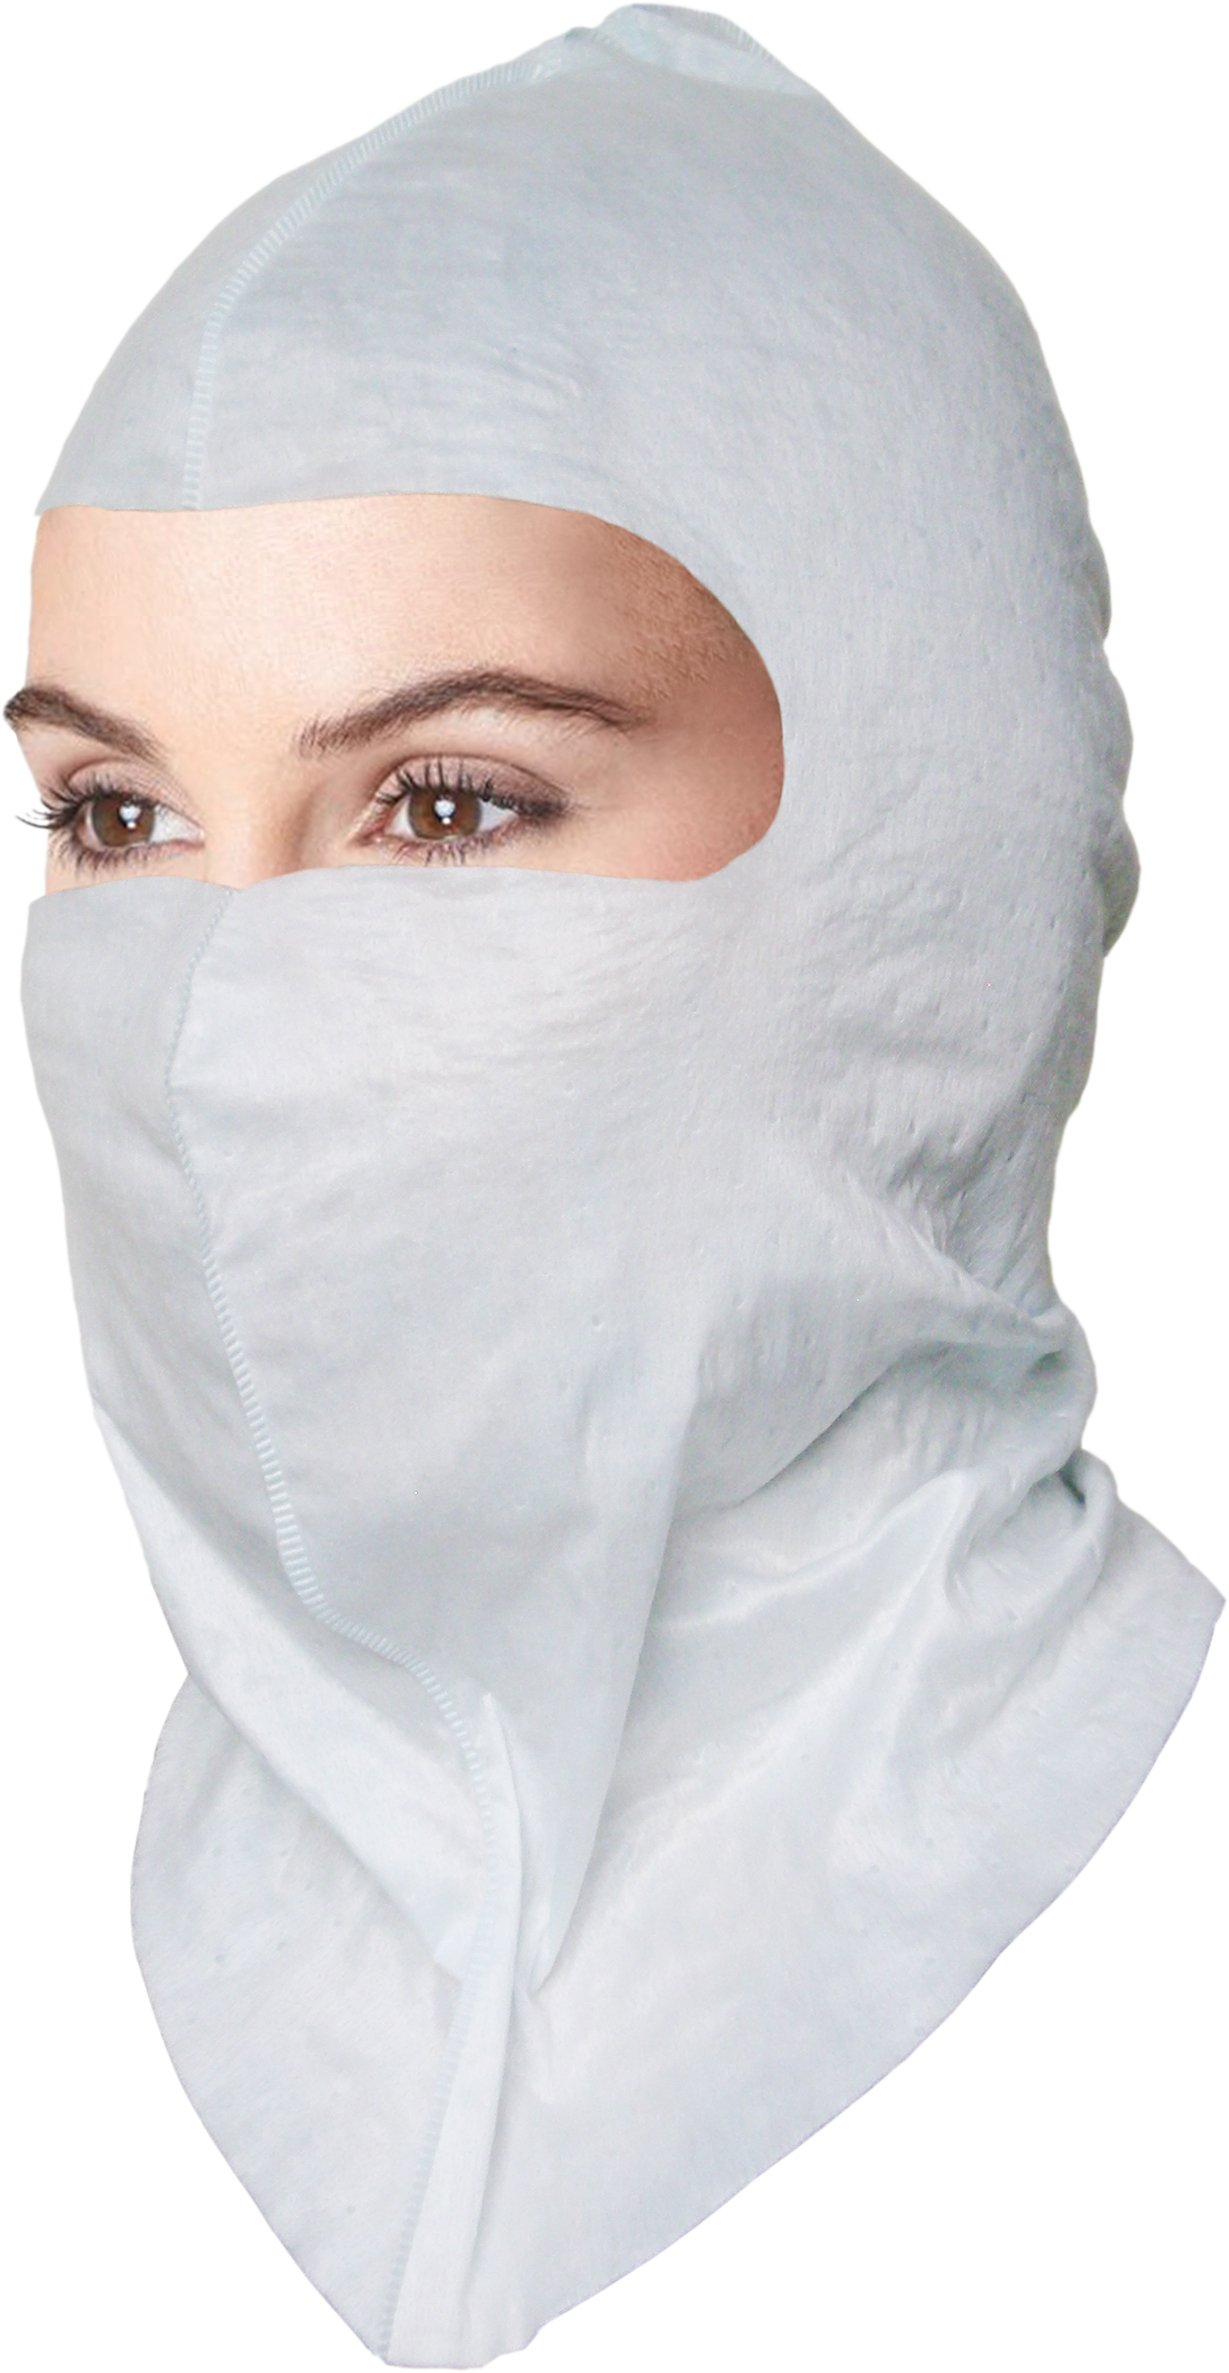 BioSafety Soft-stretch Hood, Critical Addition to Biohazard Control Infection Prevention N95 Mask Tyvek HazMat PPE. $2.7 Ea, 50 Per Box